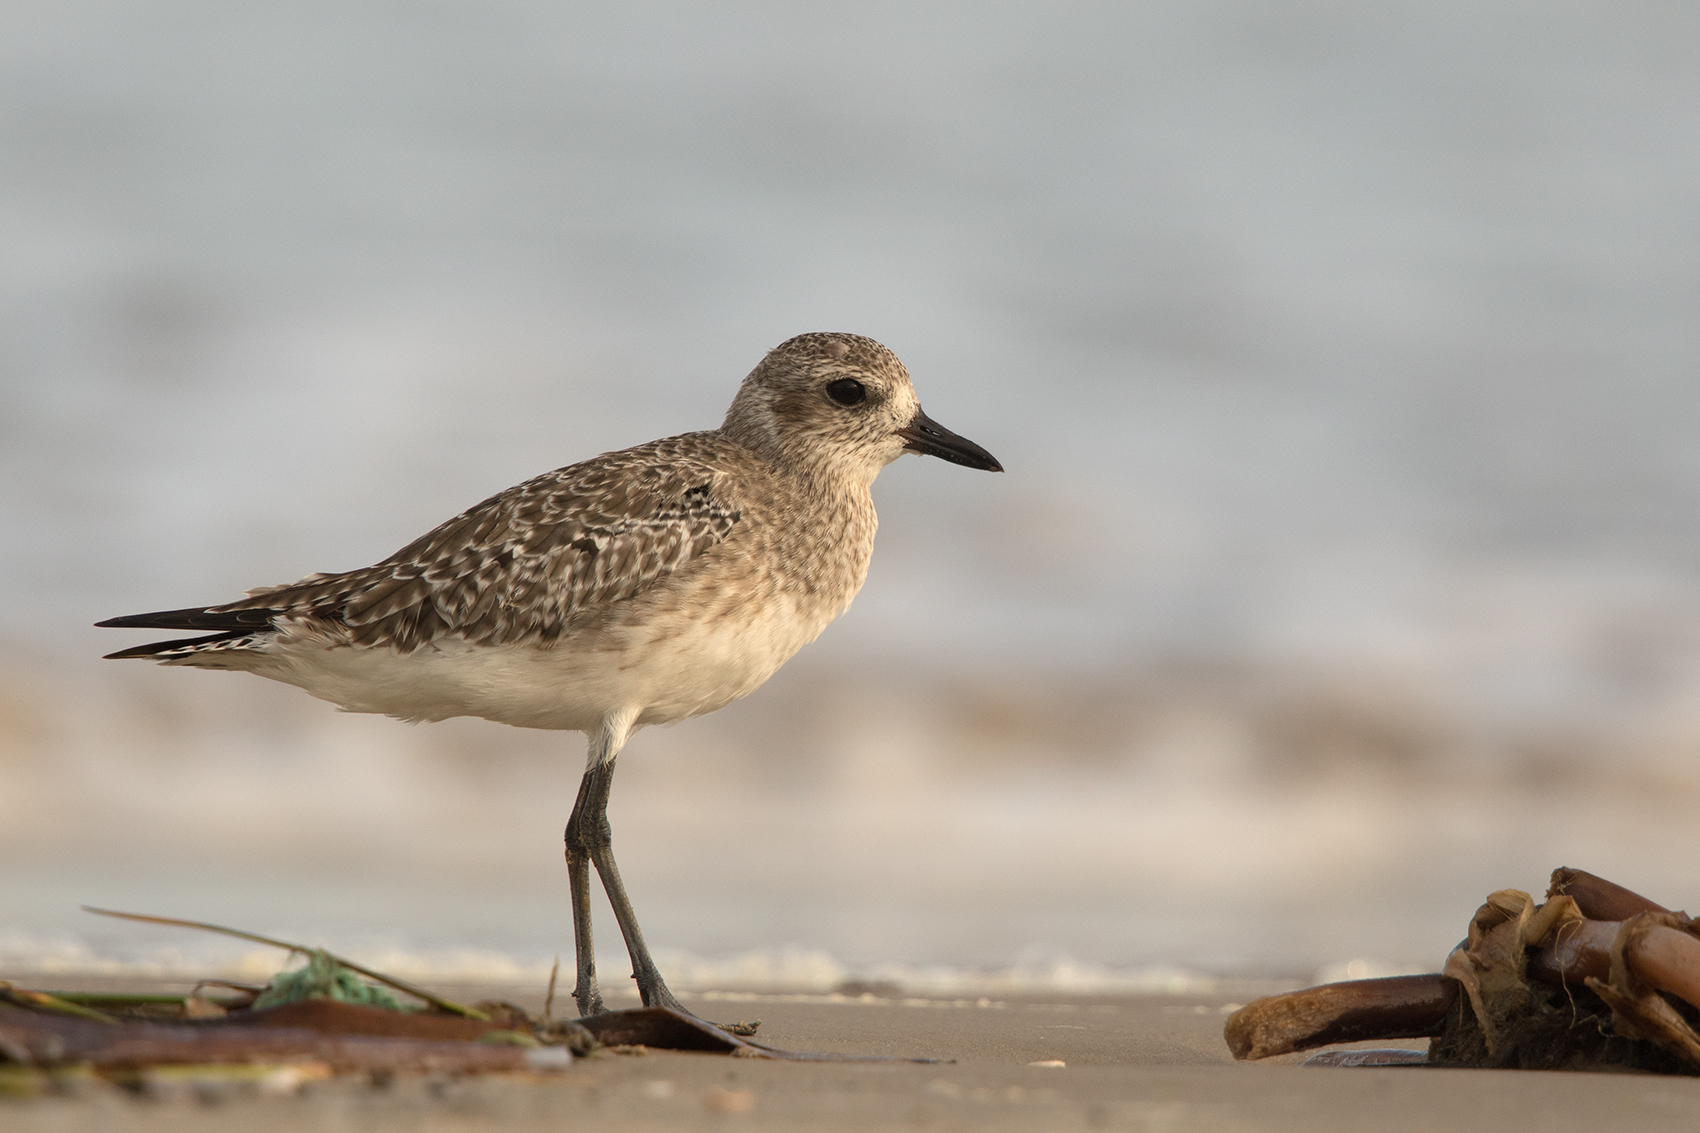 BLACK-BELLIED PLOVER - GALVESTON COUNTY TX NOV. 2016